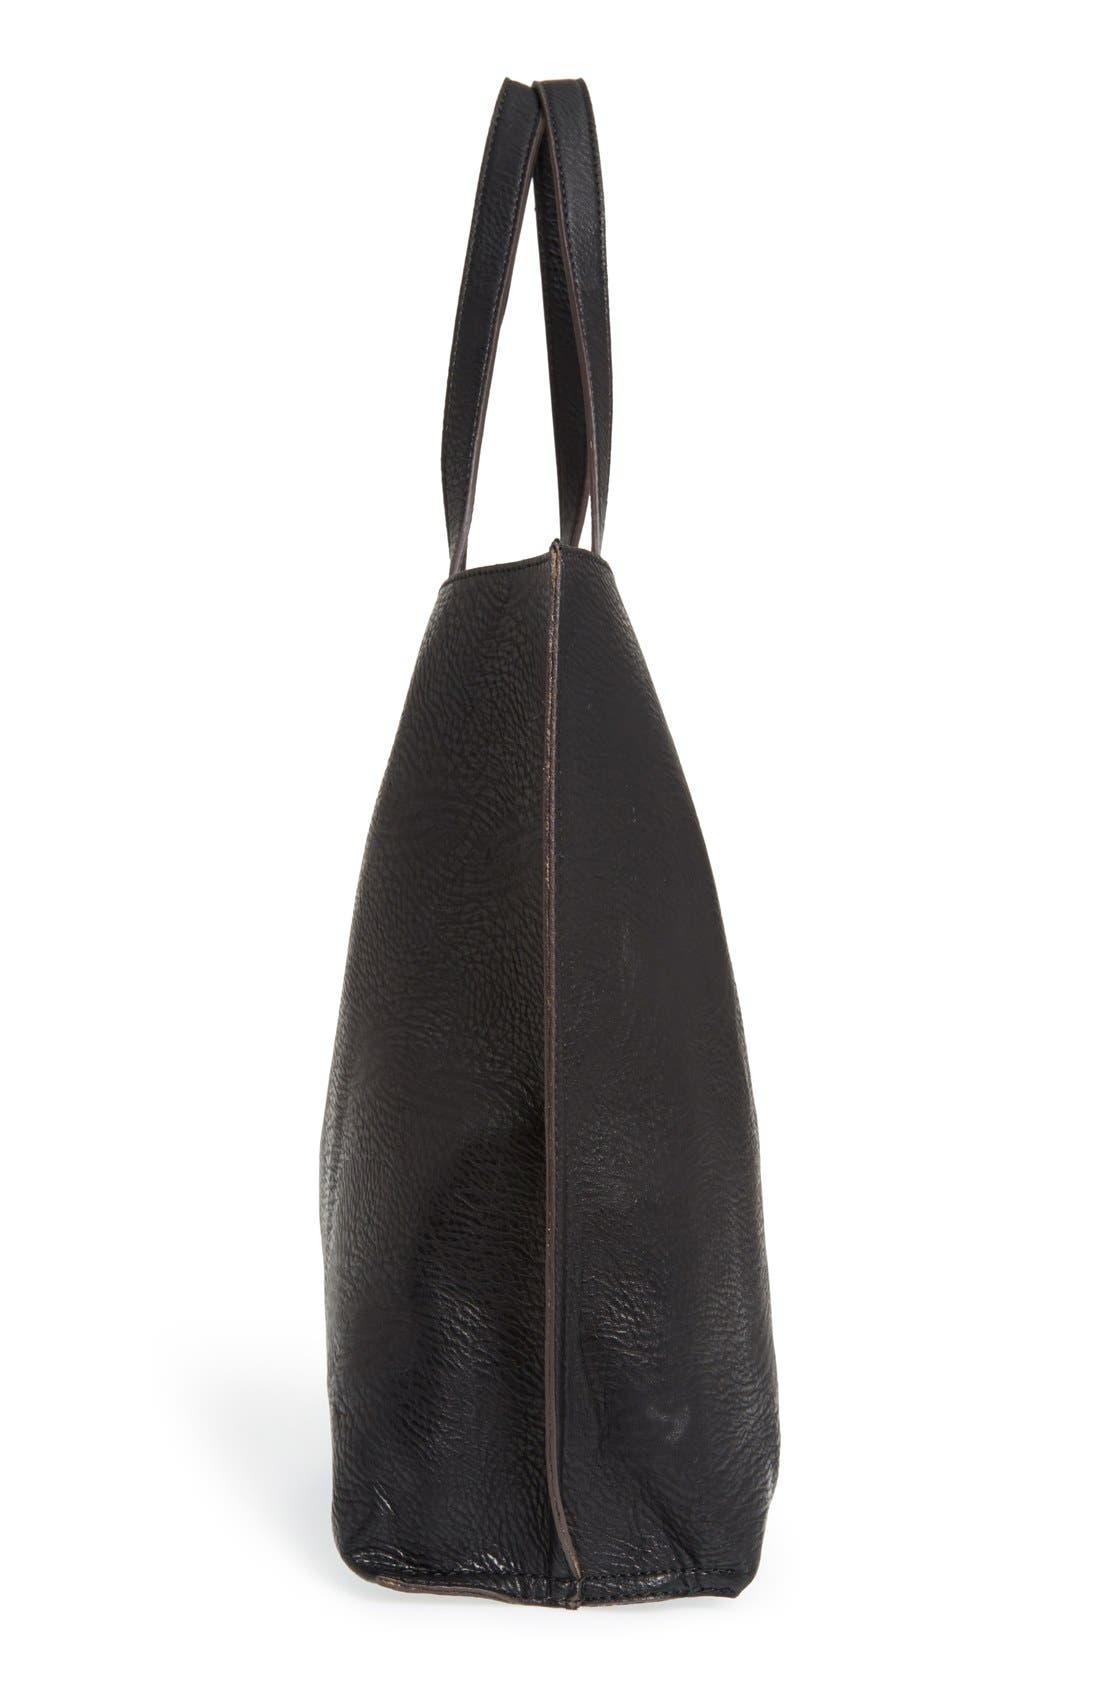 STREET LEVEL, Reversible Faux Leather Tote, Alternate thumbnail 5, color, 004